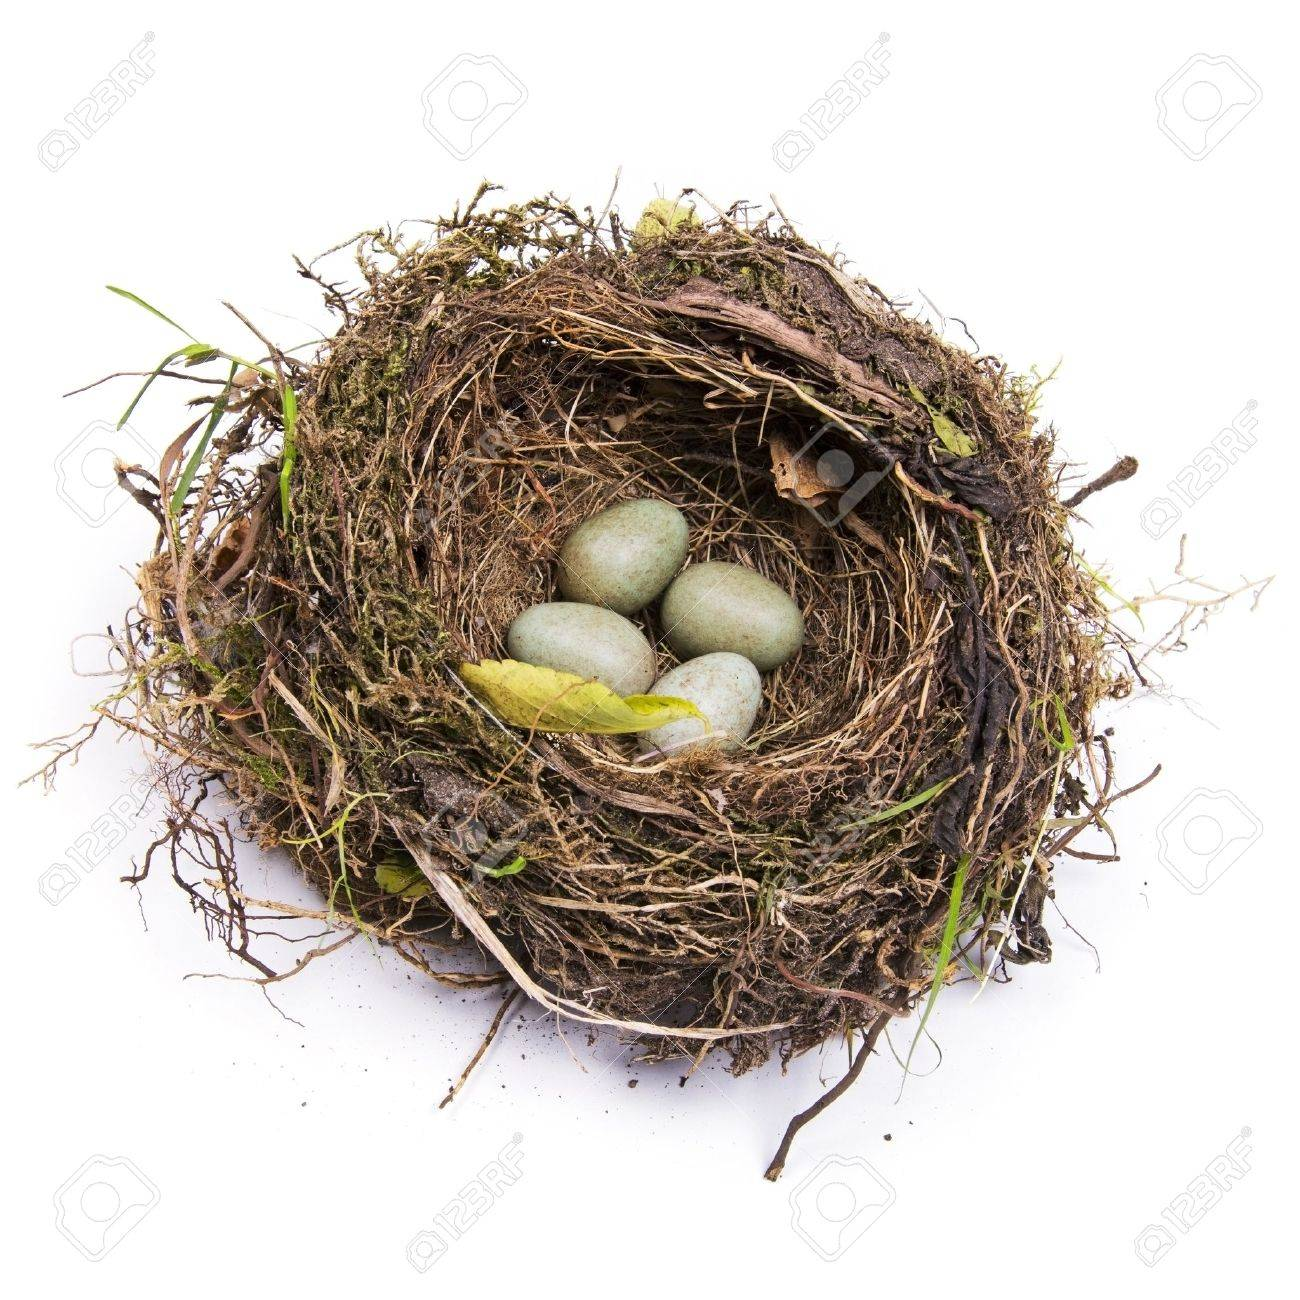 bird nest images u0026 stock pictures royalty free bird nest photos